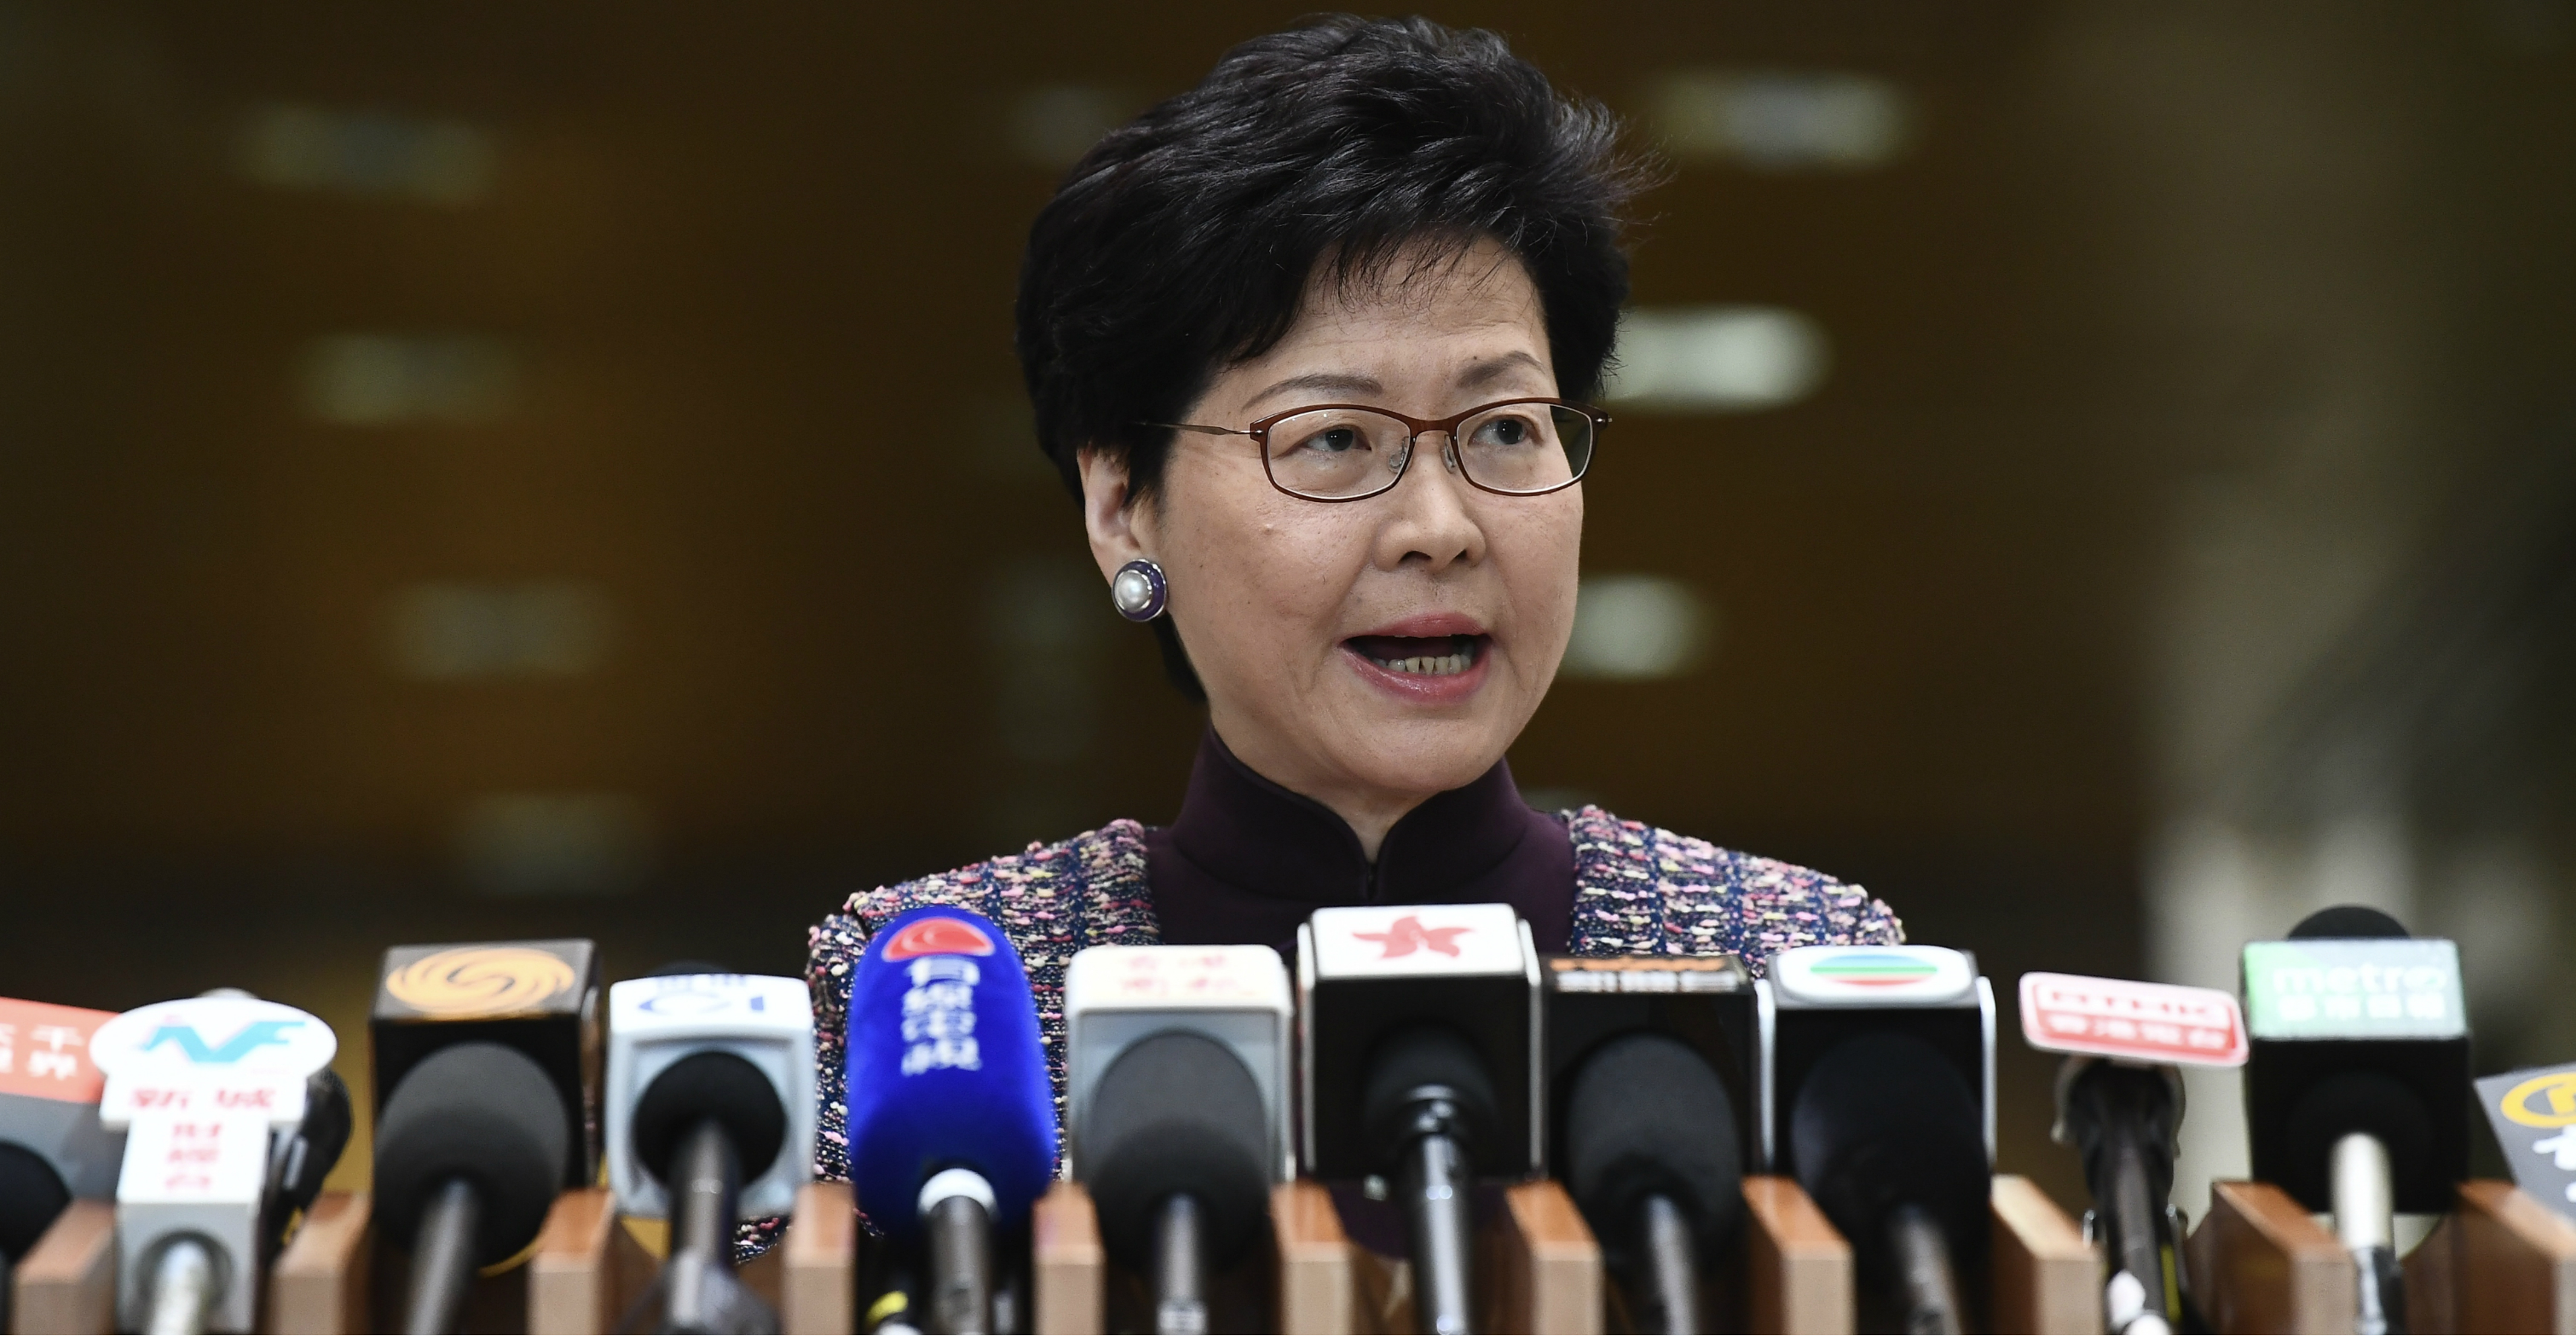 Chief Executive Carrie Lam must convince Hongkongers she places their interests above the interests of Beijing. Photo: CNSA